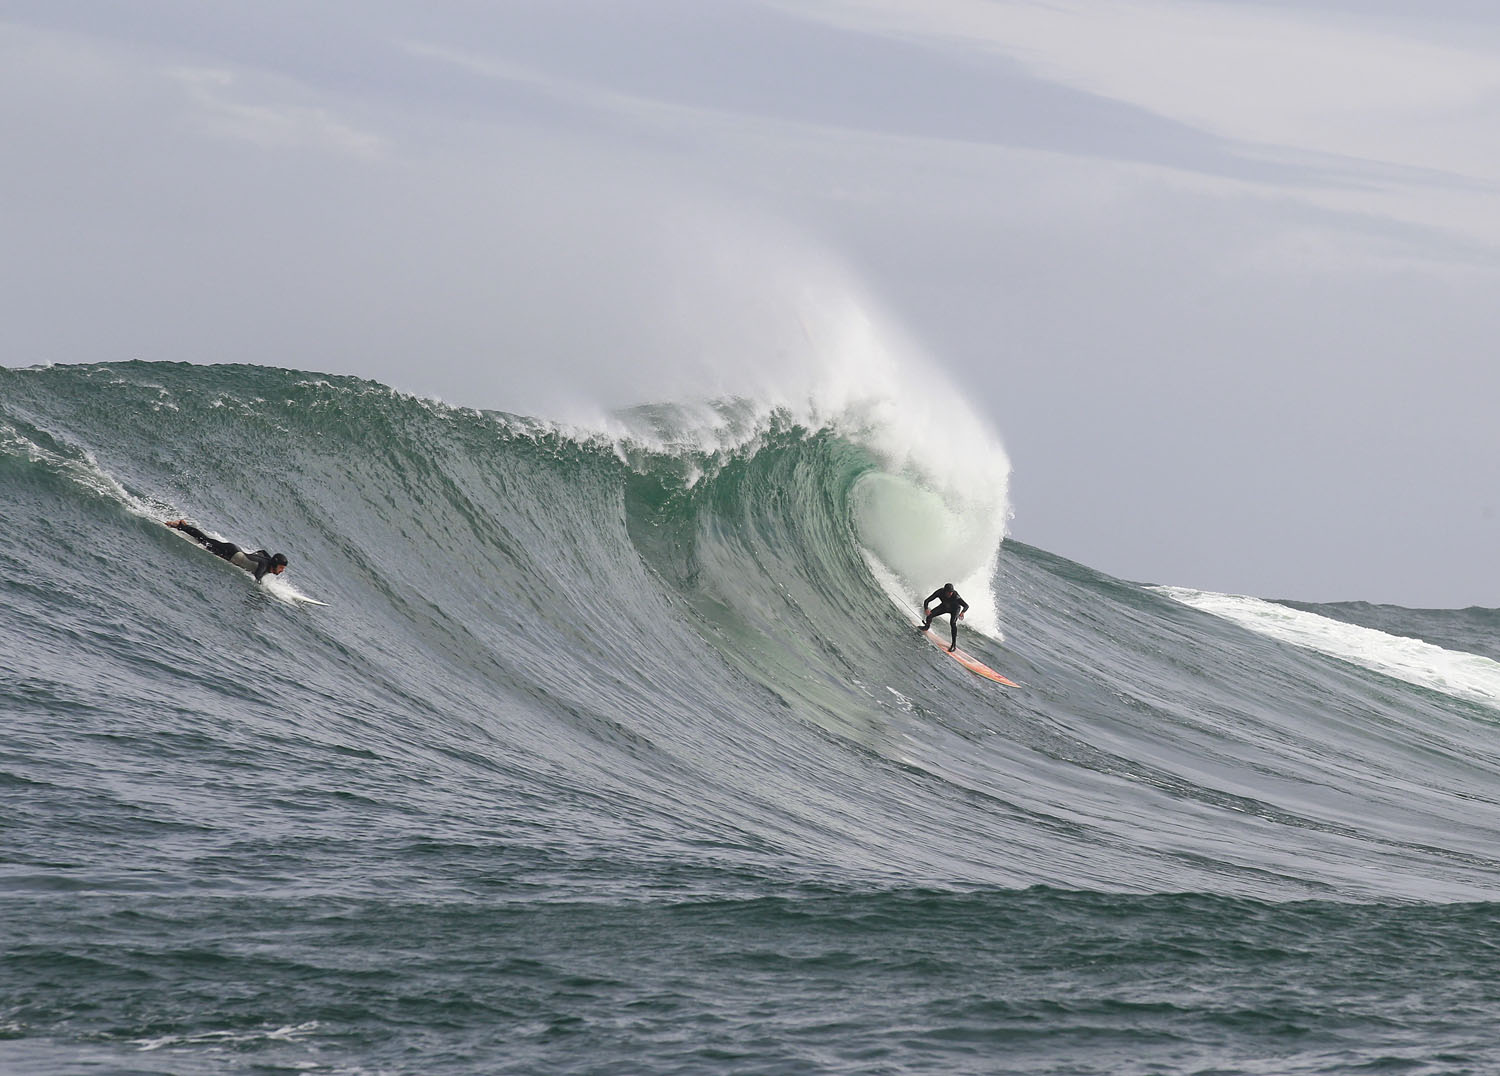 REBEL Sessions 2011 – Rebel Sessions Big Wave Surfing event in Cape Town, South Africa